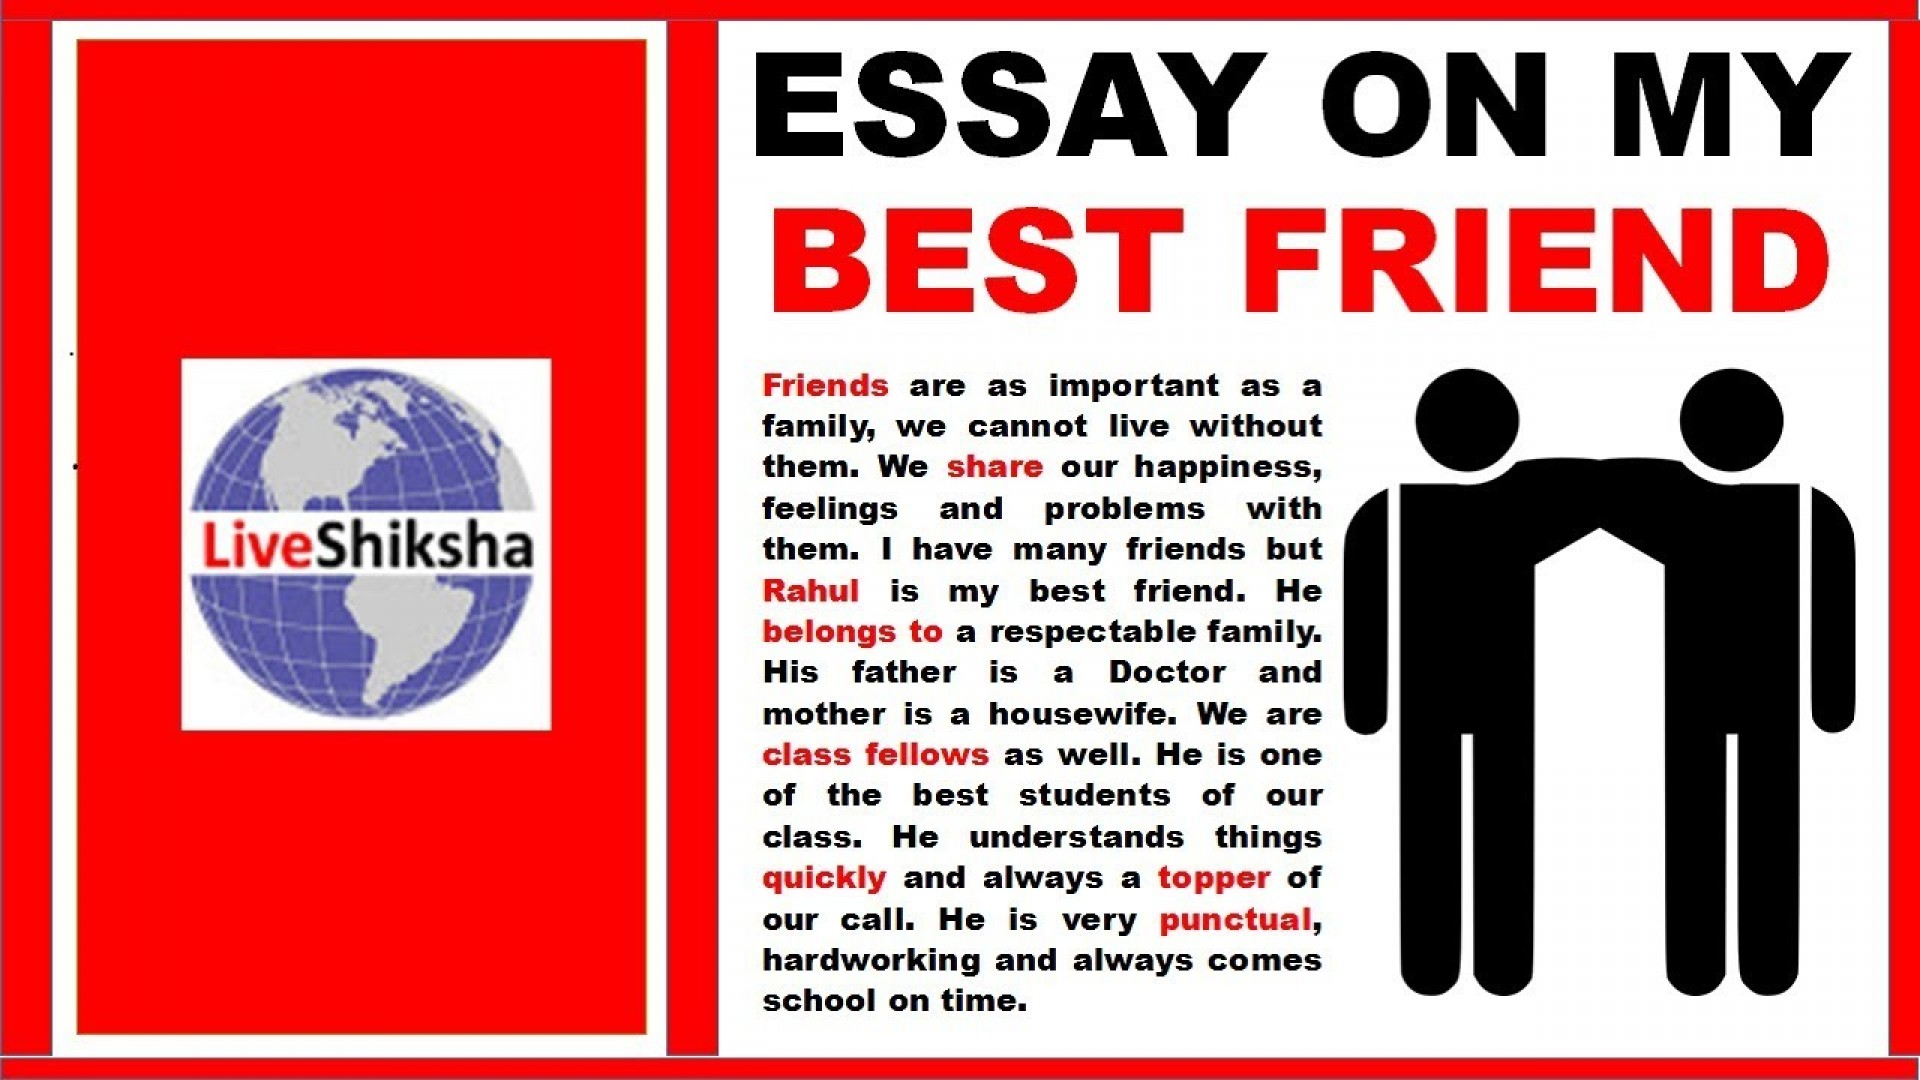 001 Maxresdefault My Best Friend Essay Marvelous For Class 2 In Hindi College Students 1920